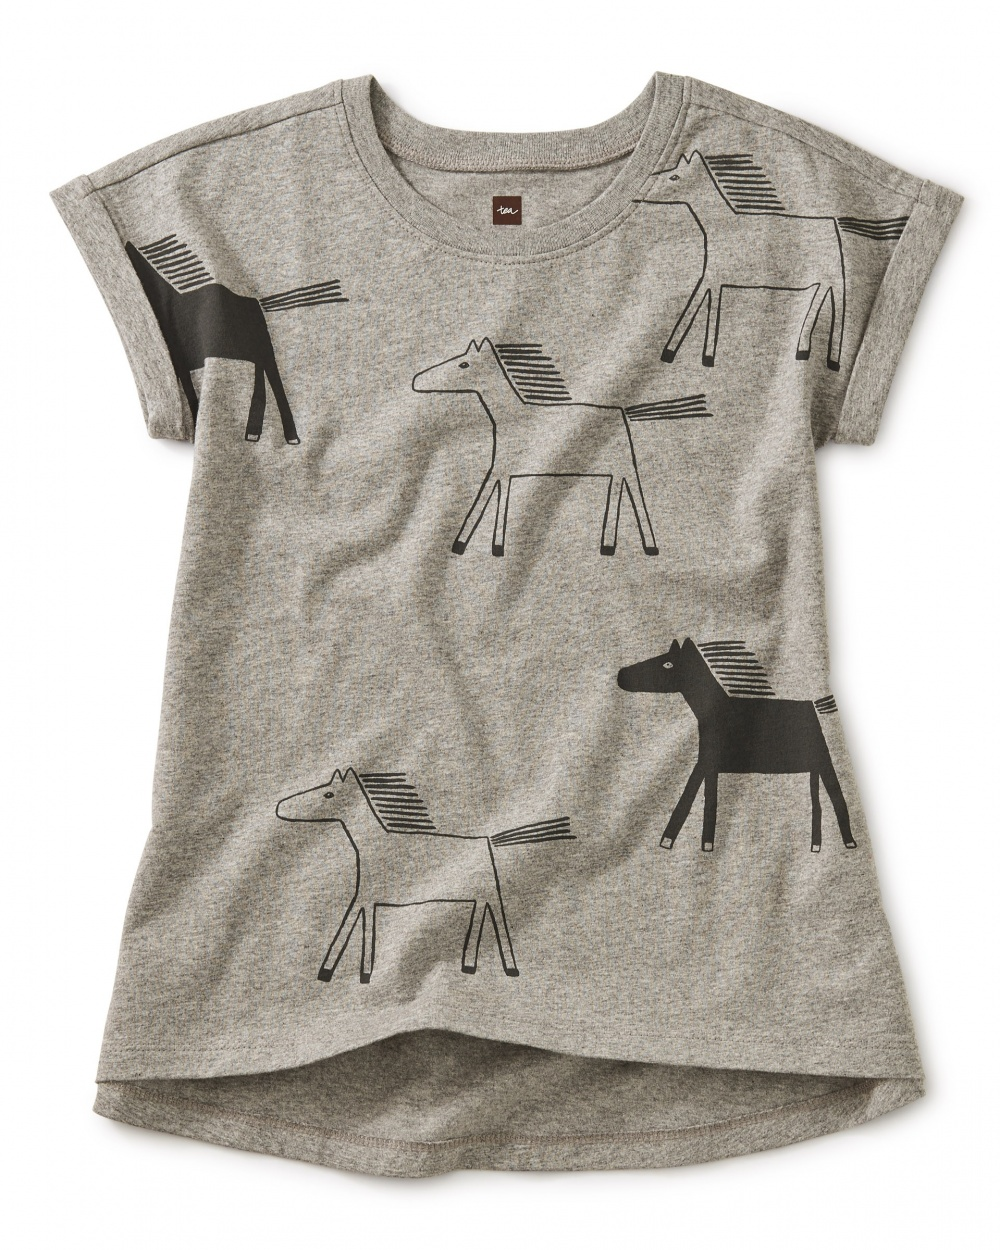 Himalayan Horses Graphic Cuffed Top